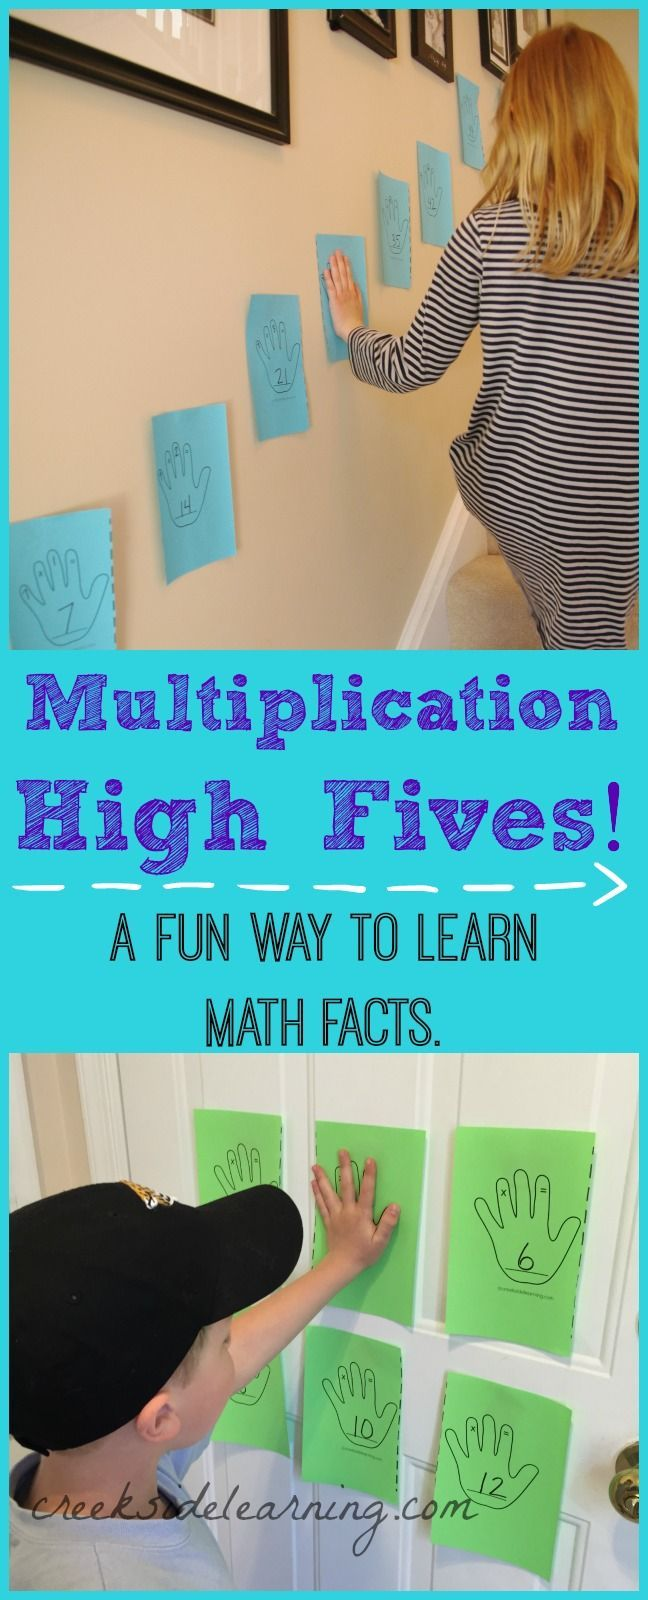 Worksheet Learning Math Facts 1000 images about hands on math pinterest facts place multiplication games for learning in a fun way creekside learning